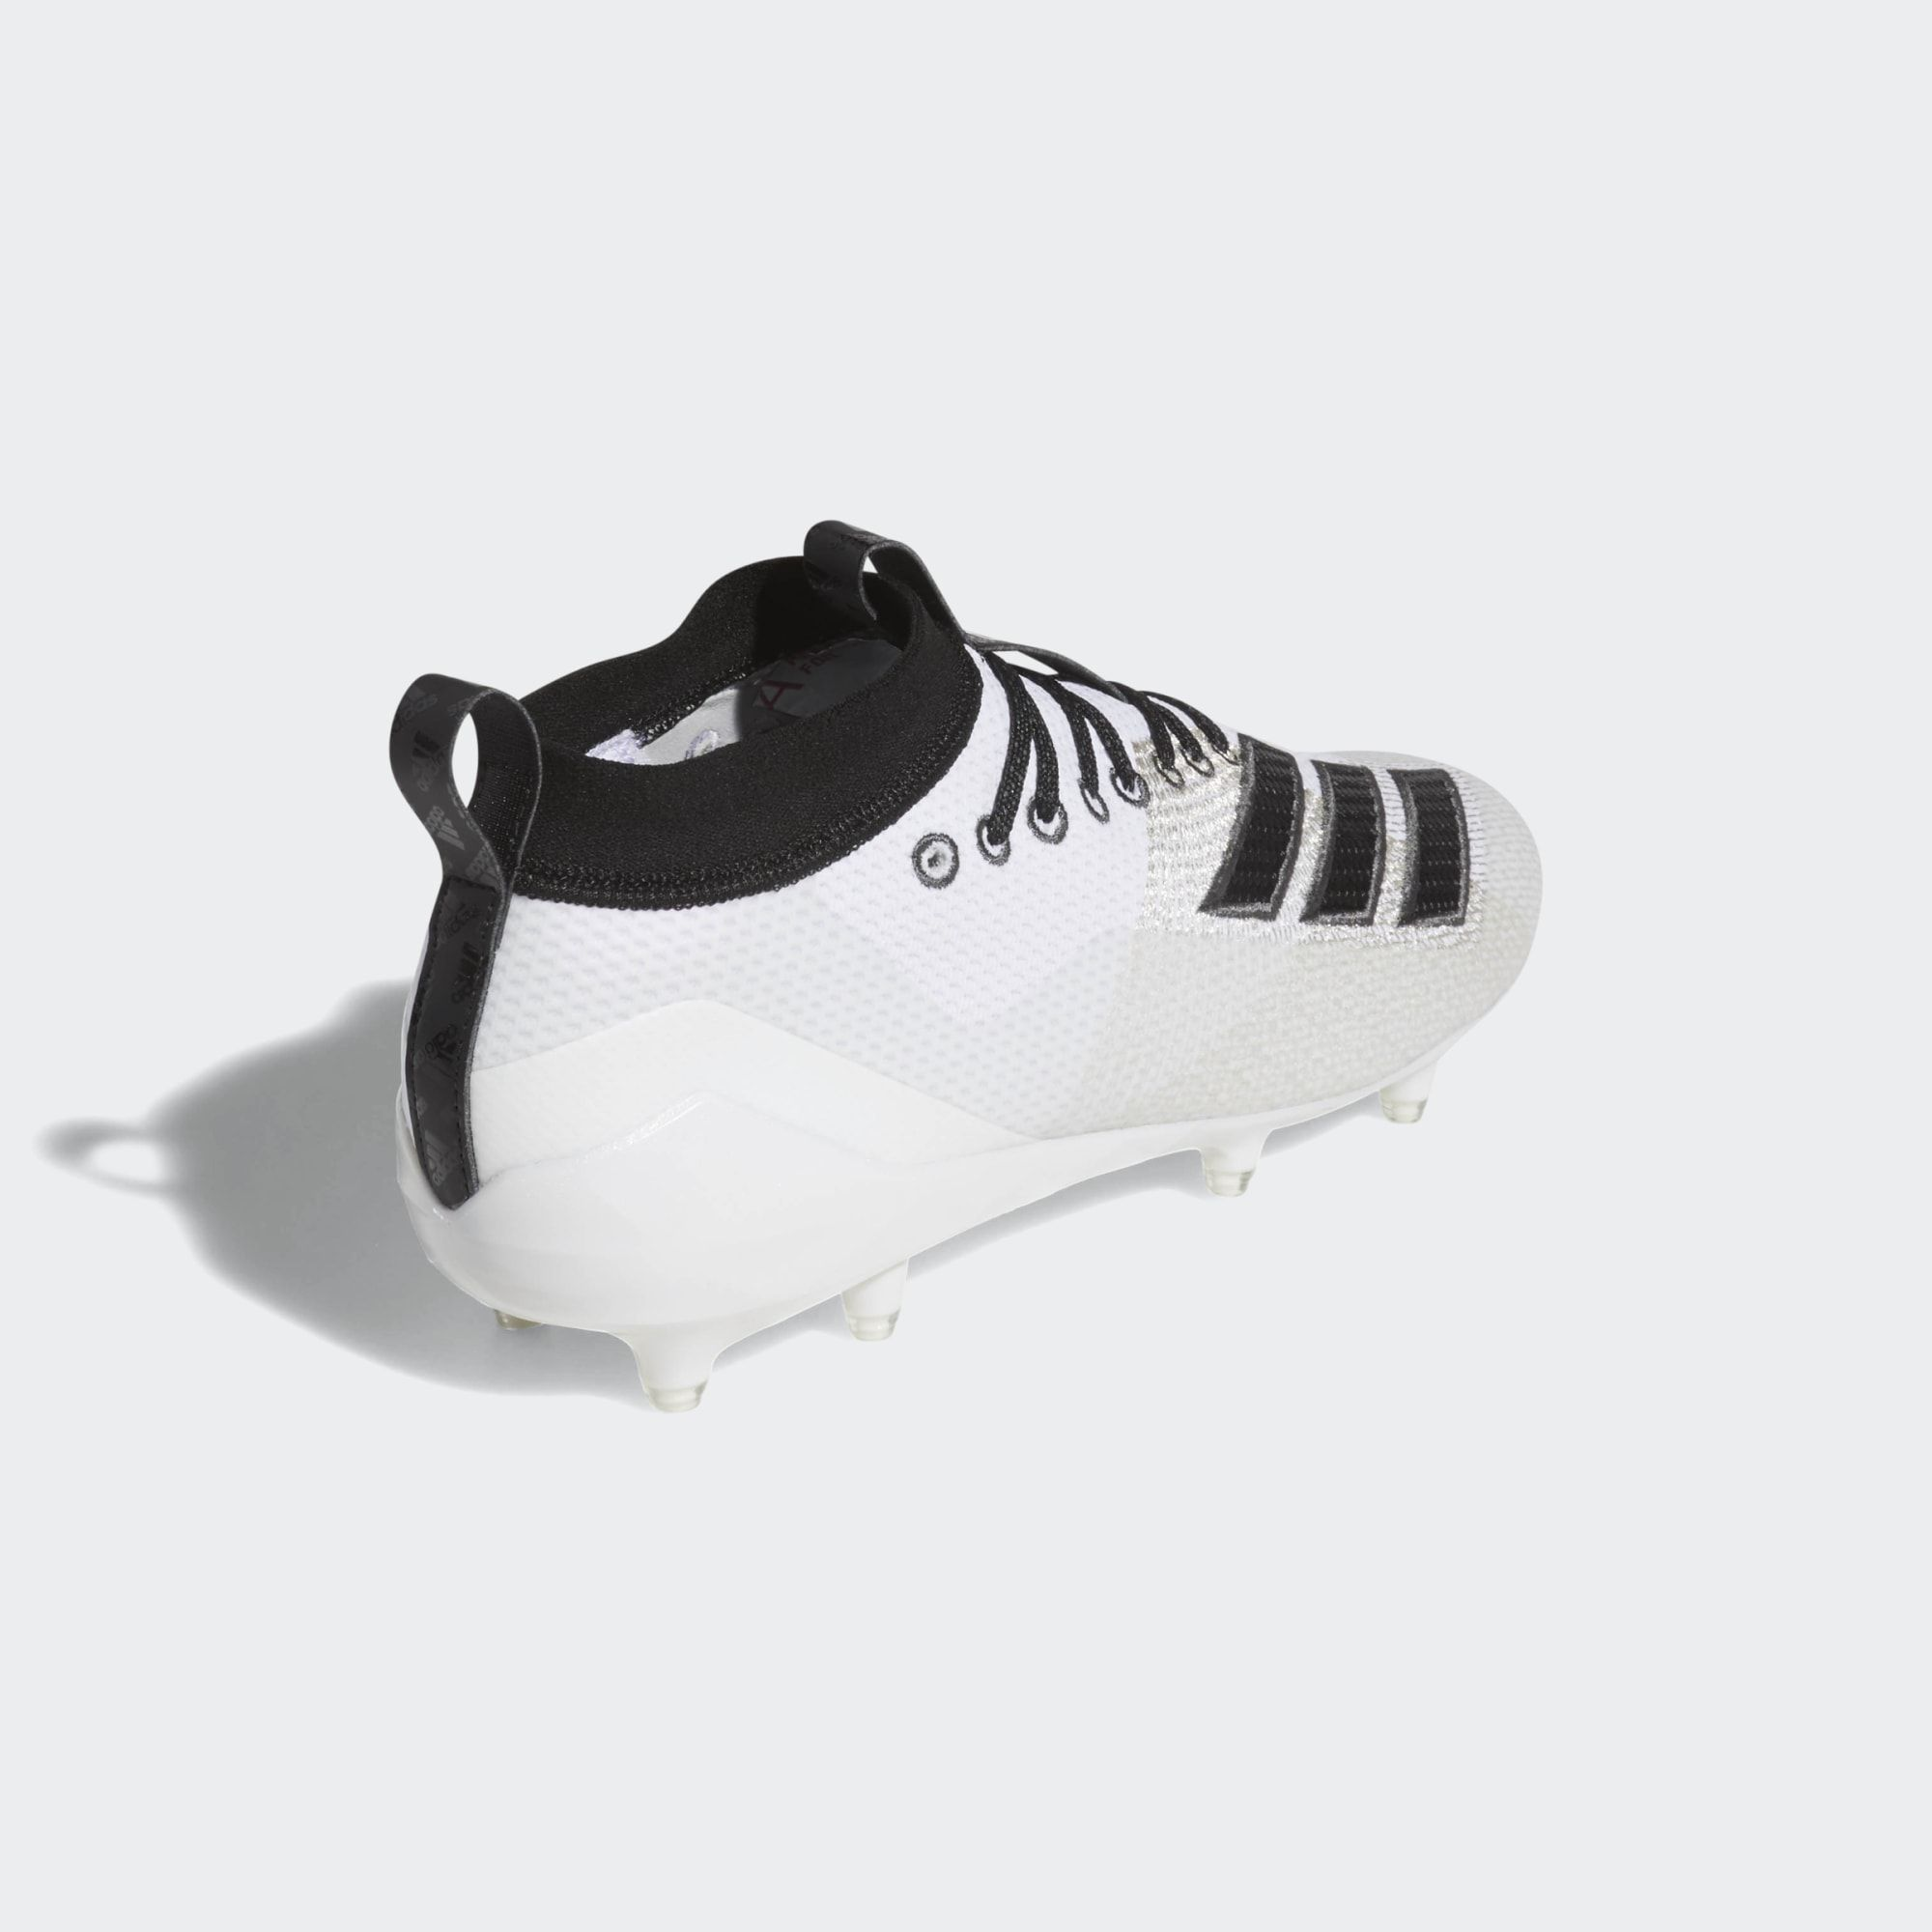 adidas 8.0 cleats white